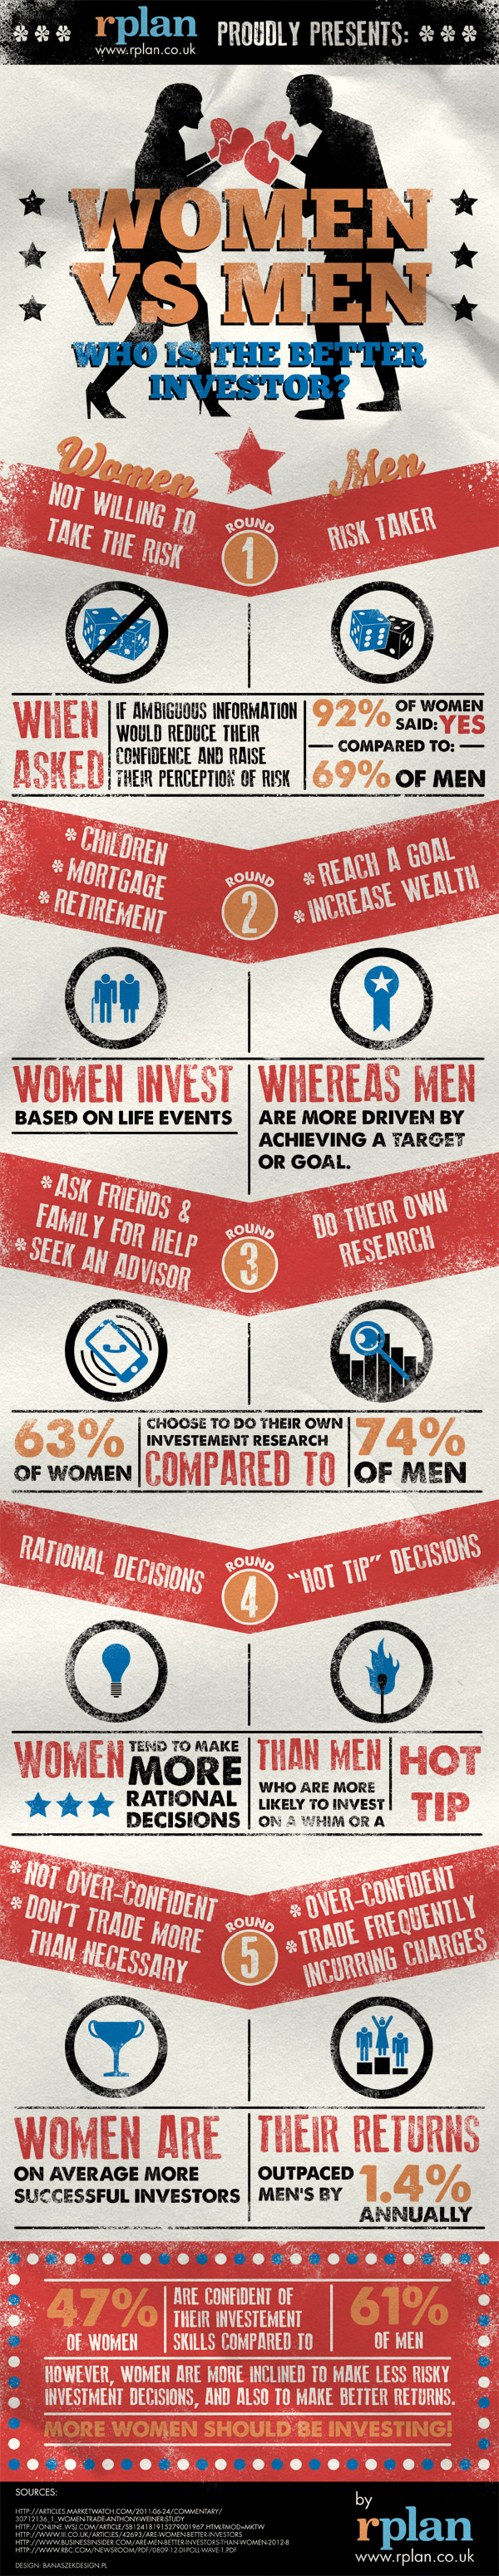 Women vs Men: Who's the Better Investor?